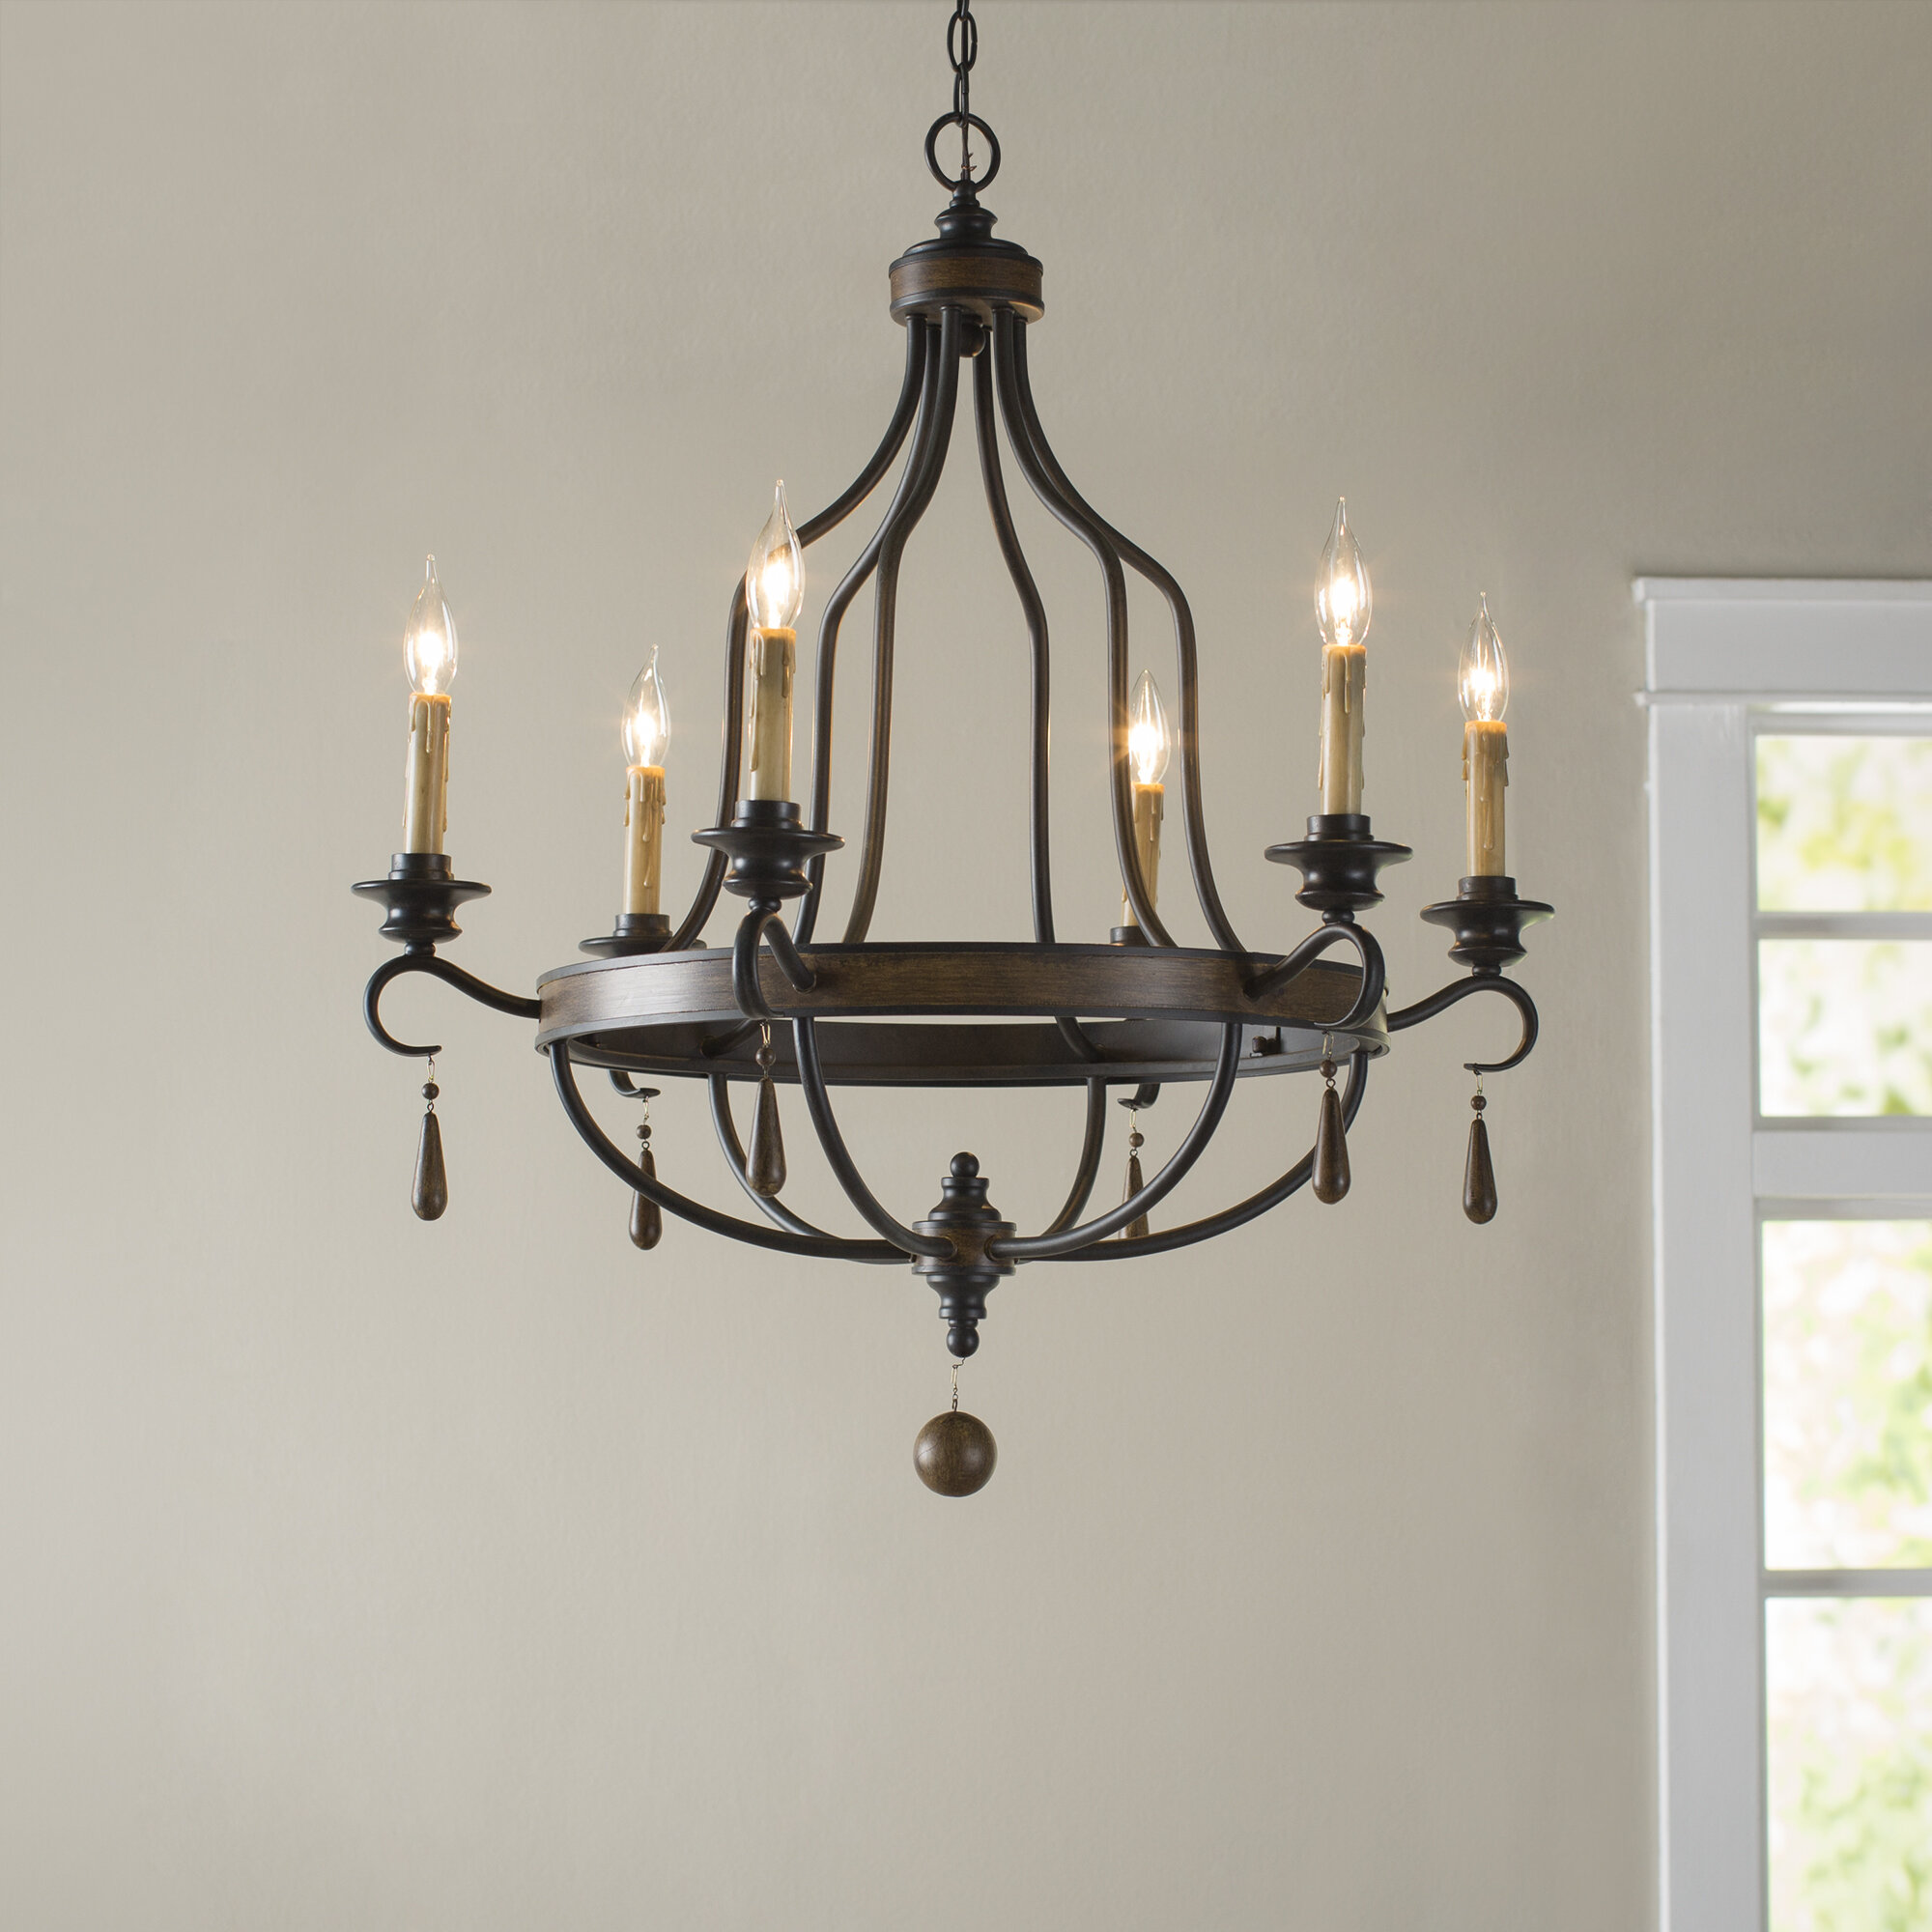 designs c century chandelier old vintage from france style russian fashioned empire